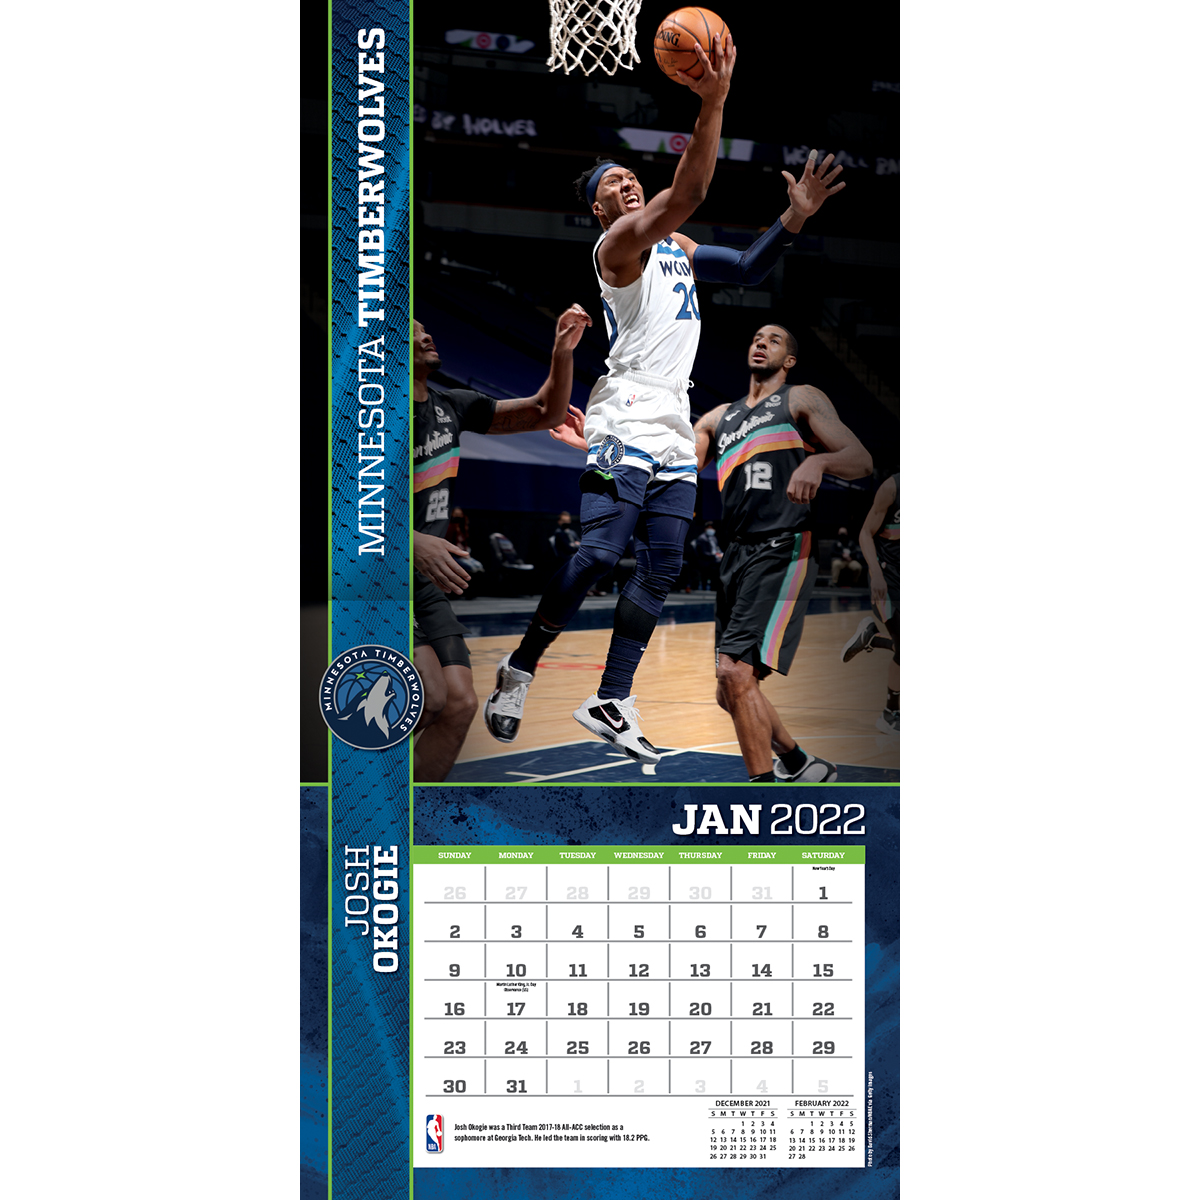 Minnesota Timberwolves 2018 Wall Calendar Buy At Khc Sports